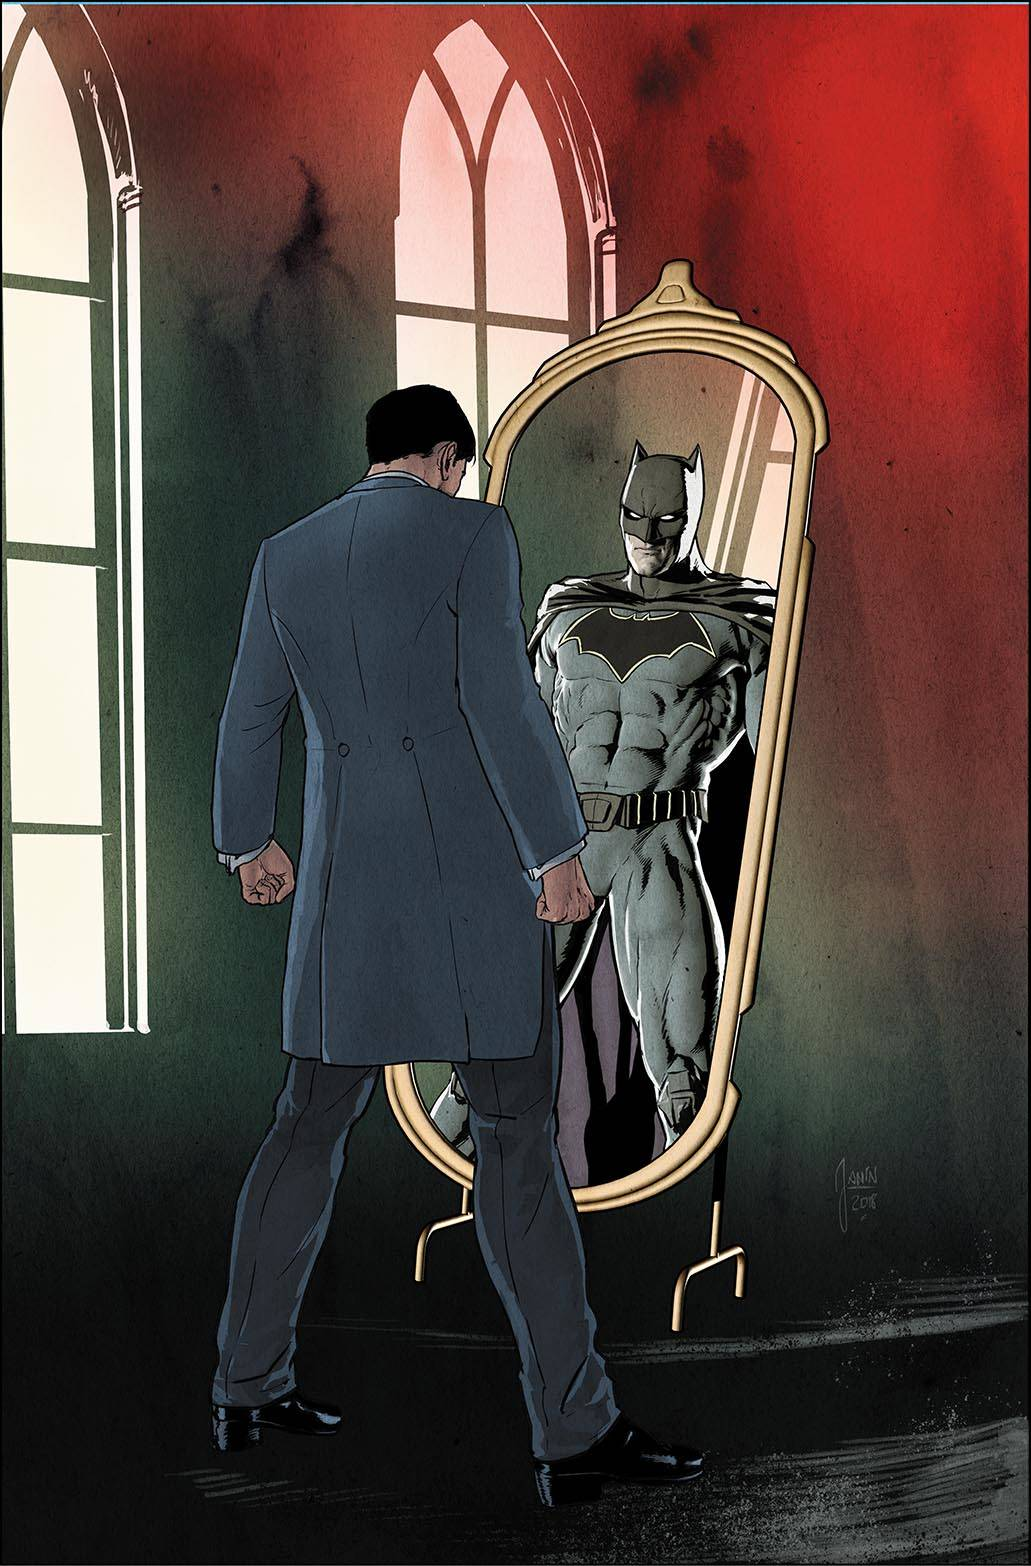 STL077243 BATMAN #44 gets new covers to celebrate Batman and Catwoman's wedding